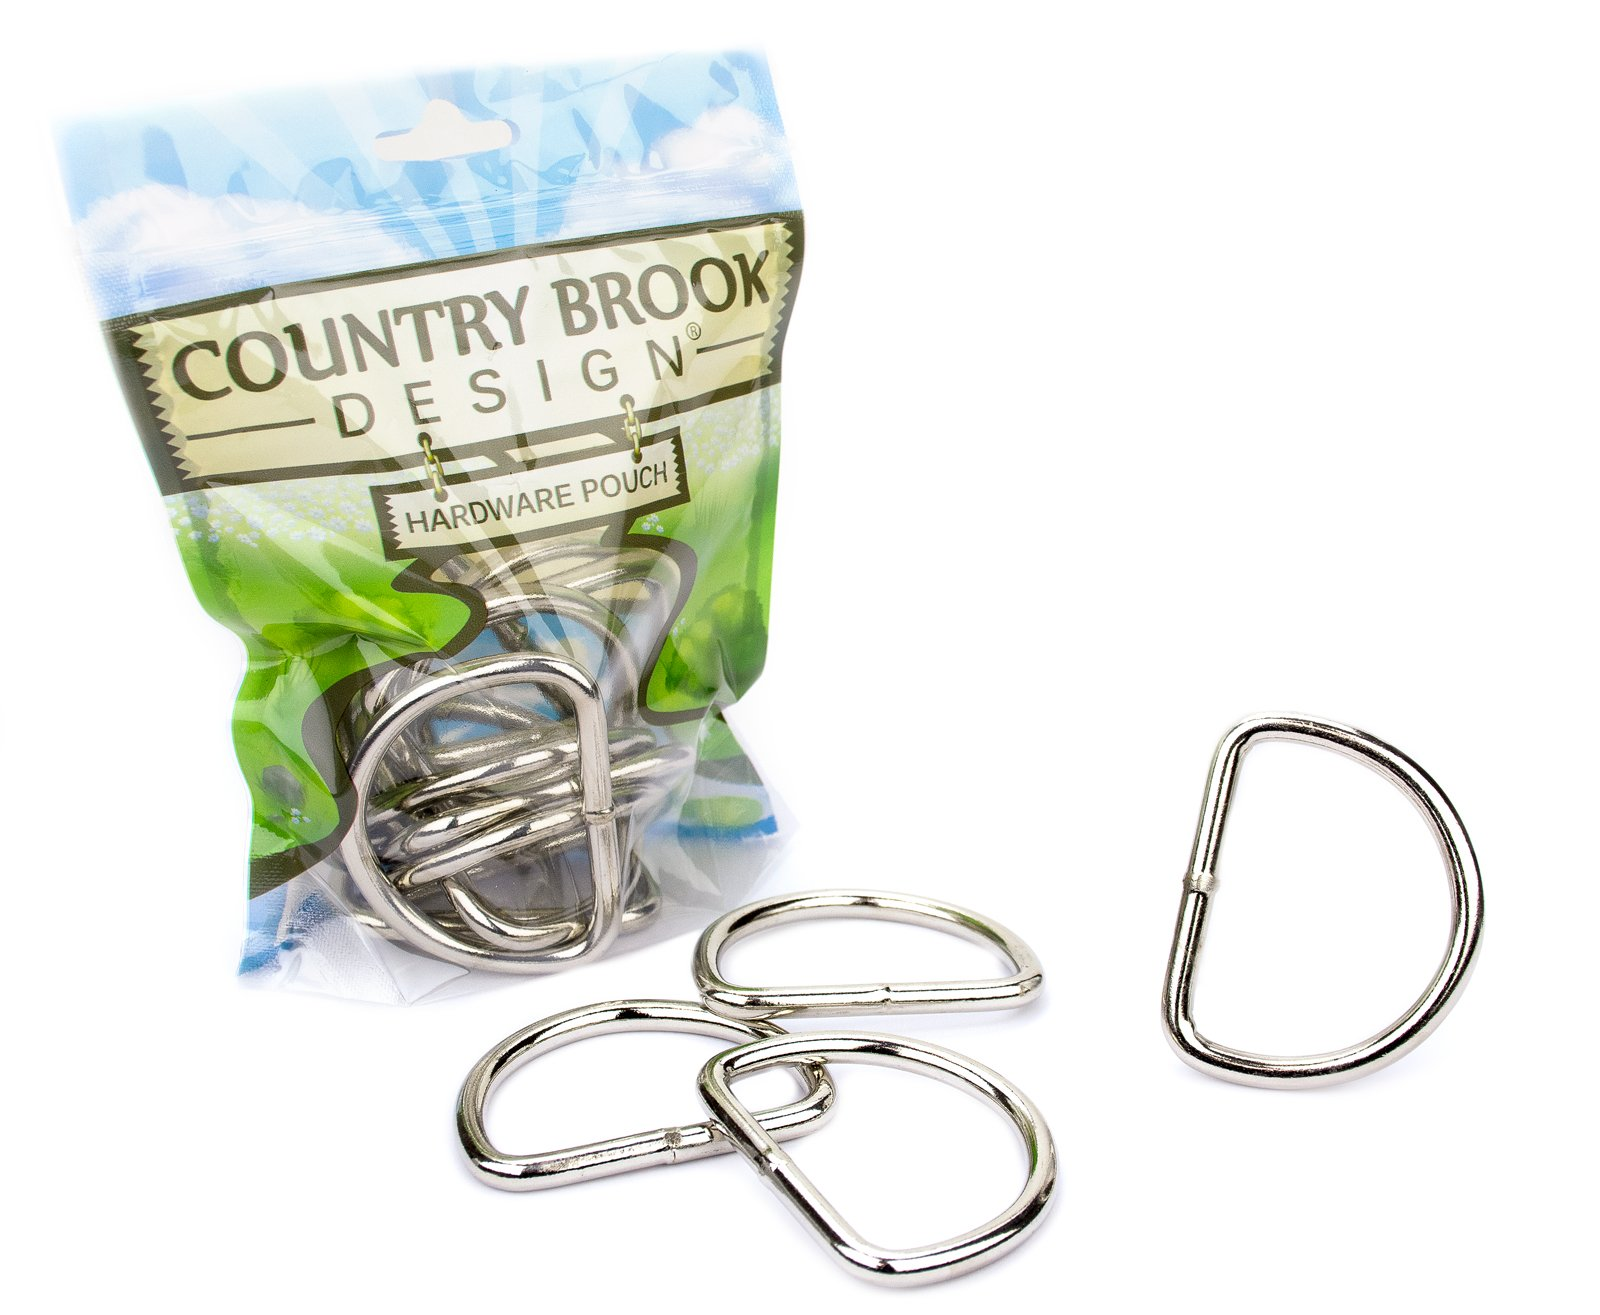 Country Brook Design - 2 Inch Heavy Welded D-Rings (50 Pack)